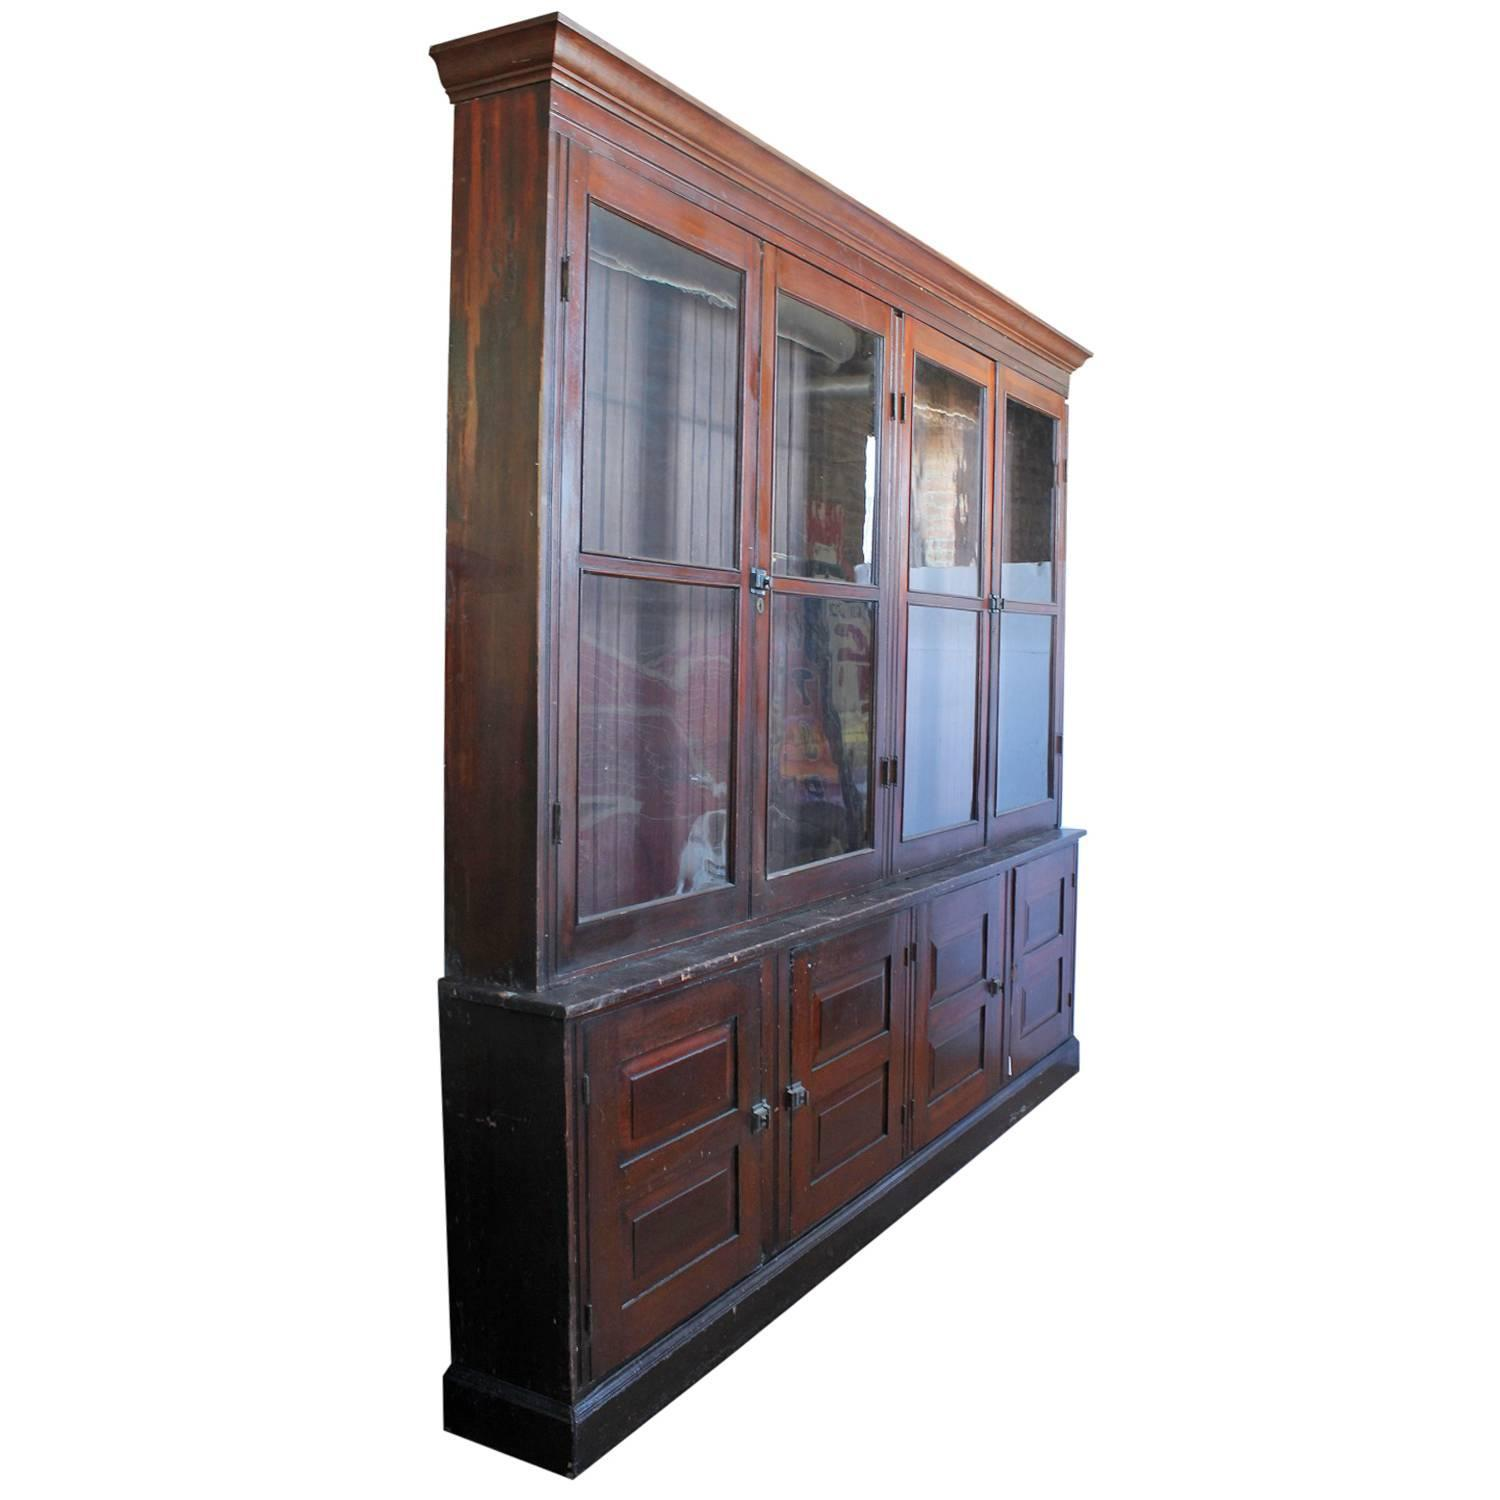 Antique american department store wood cabinet at 1stdibs - Cabinet recrutement agroalimentaire ...